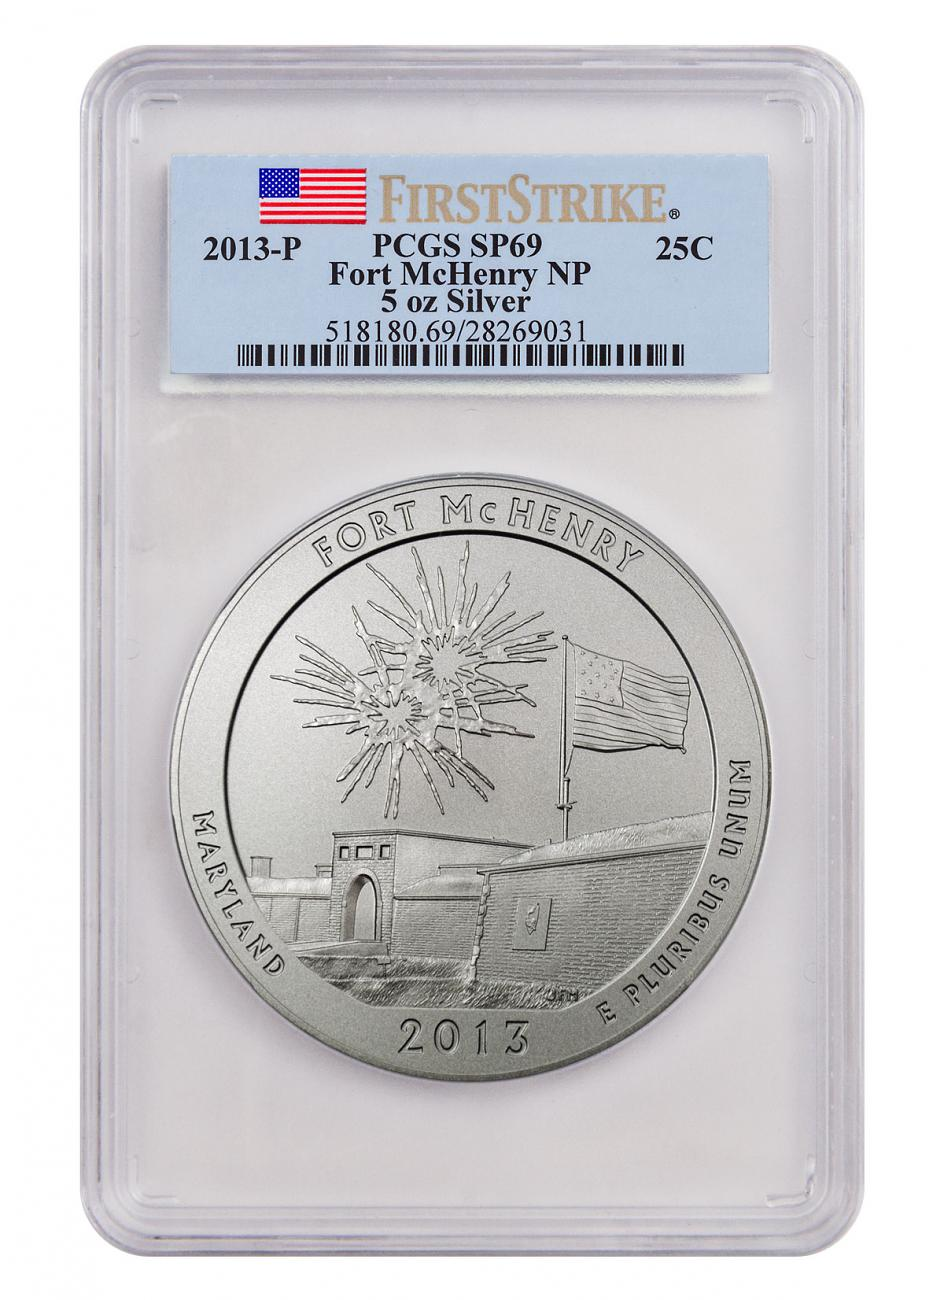 2013-P Fort McHenry 5 oz. Silver America the Beautiful Specimen Coin PCGS SP69 FS